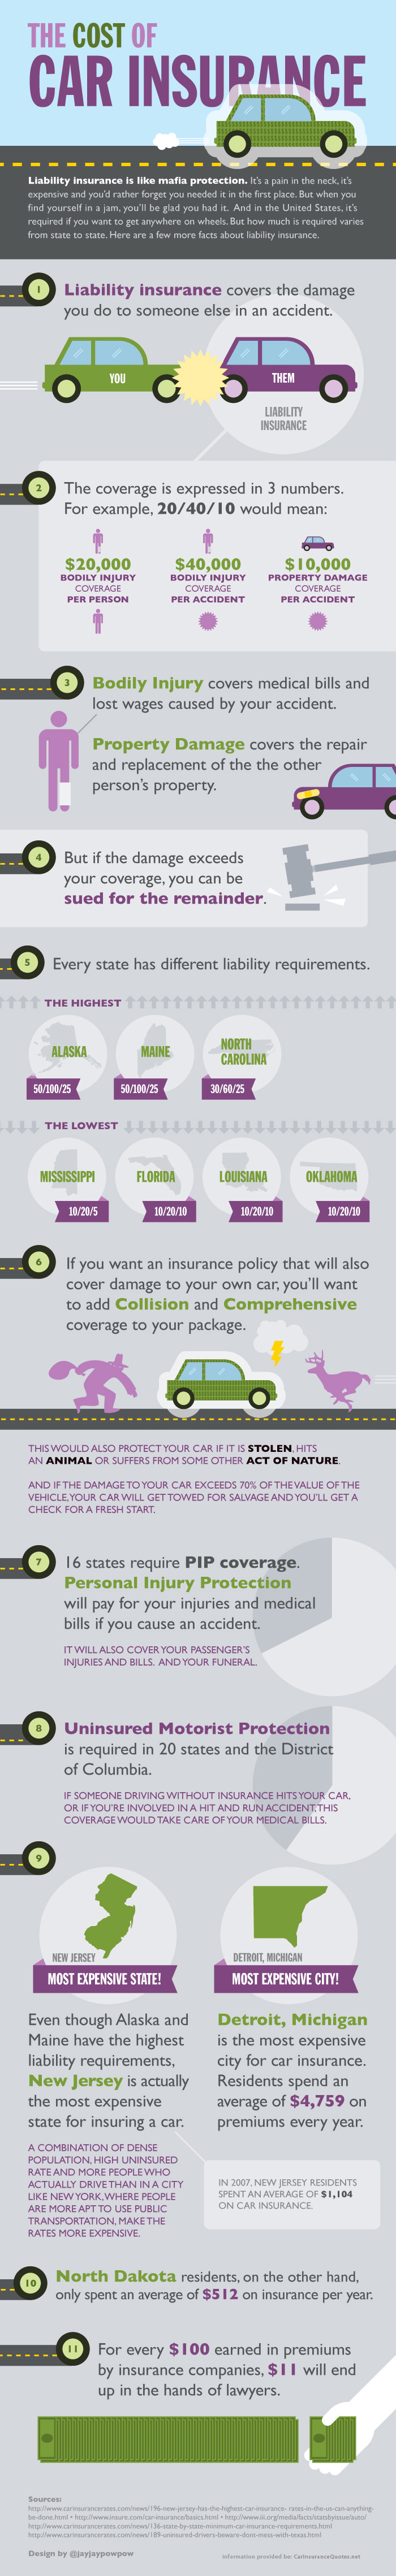 The Cost of Car Insurance